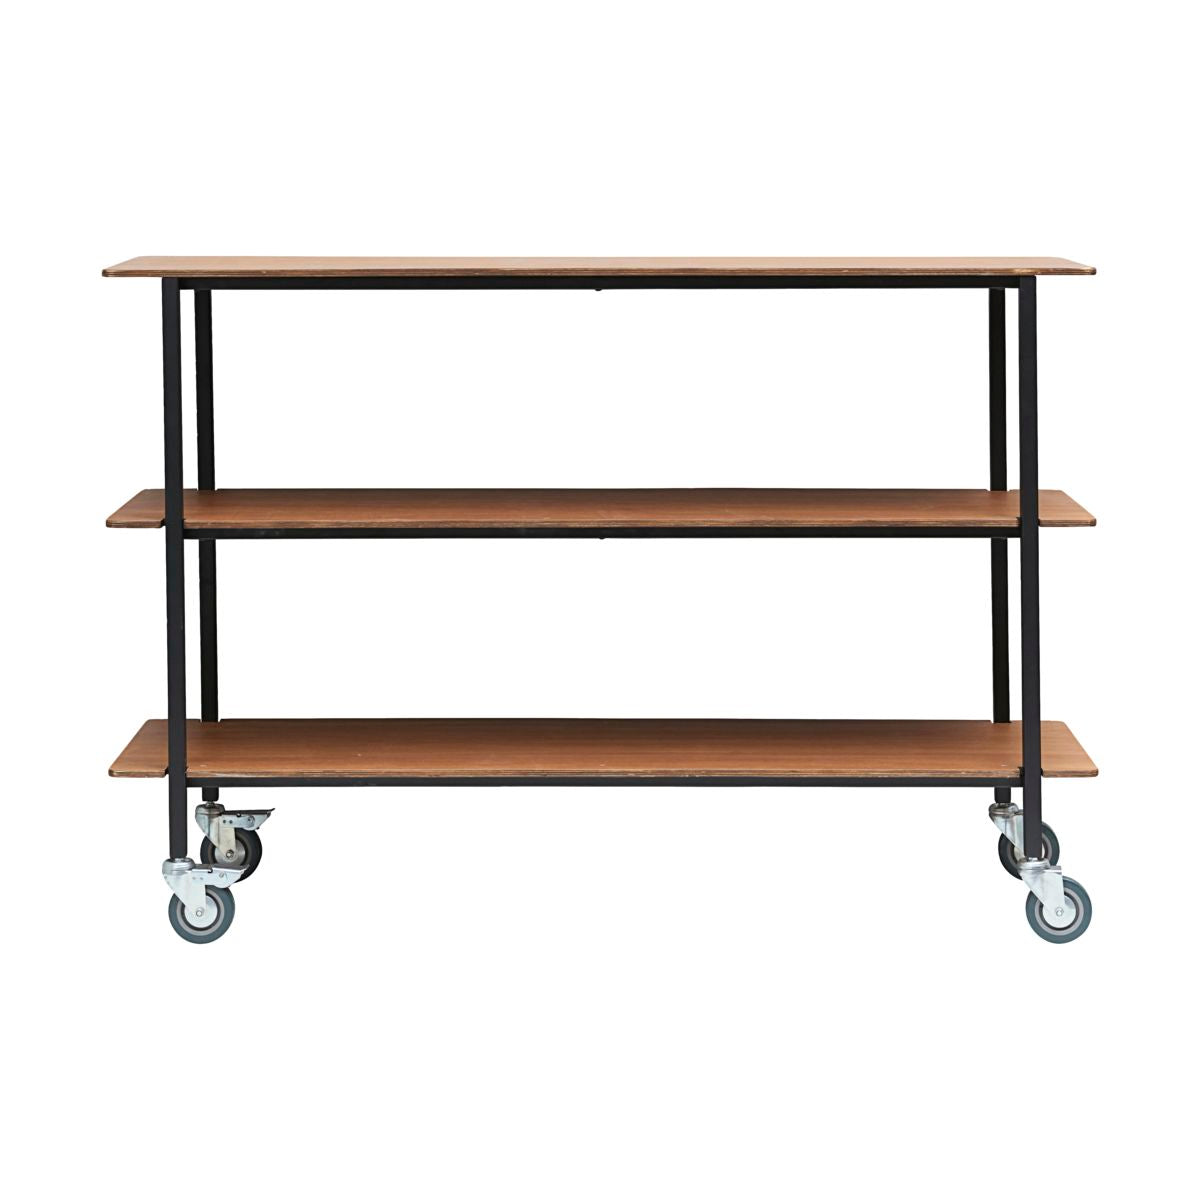 Trolley with Wooden Shelves